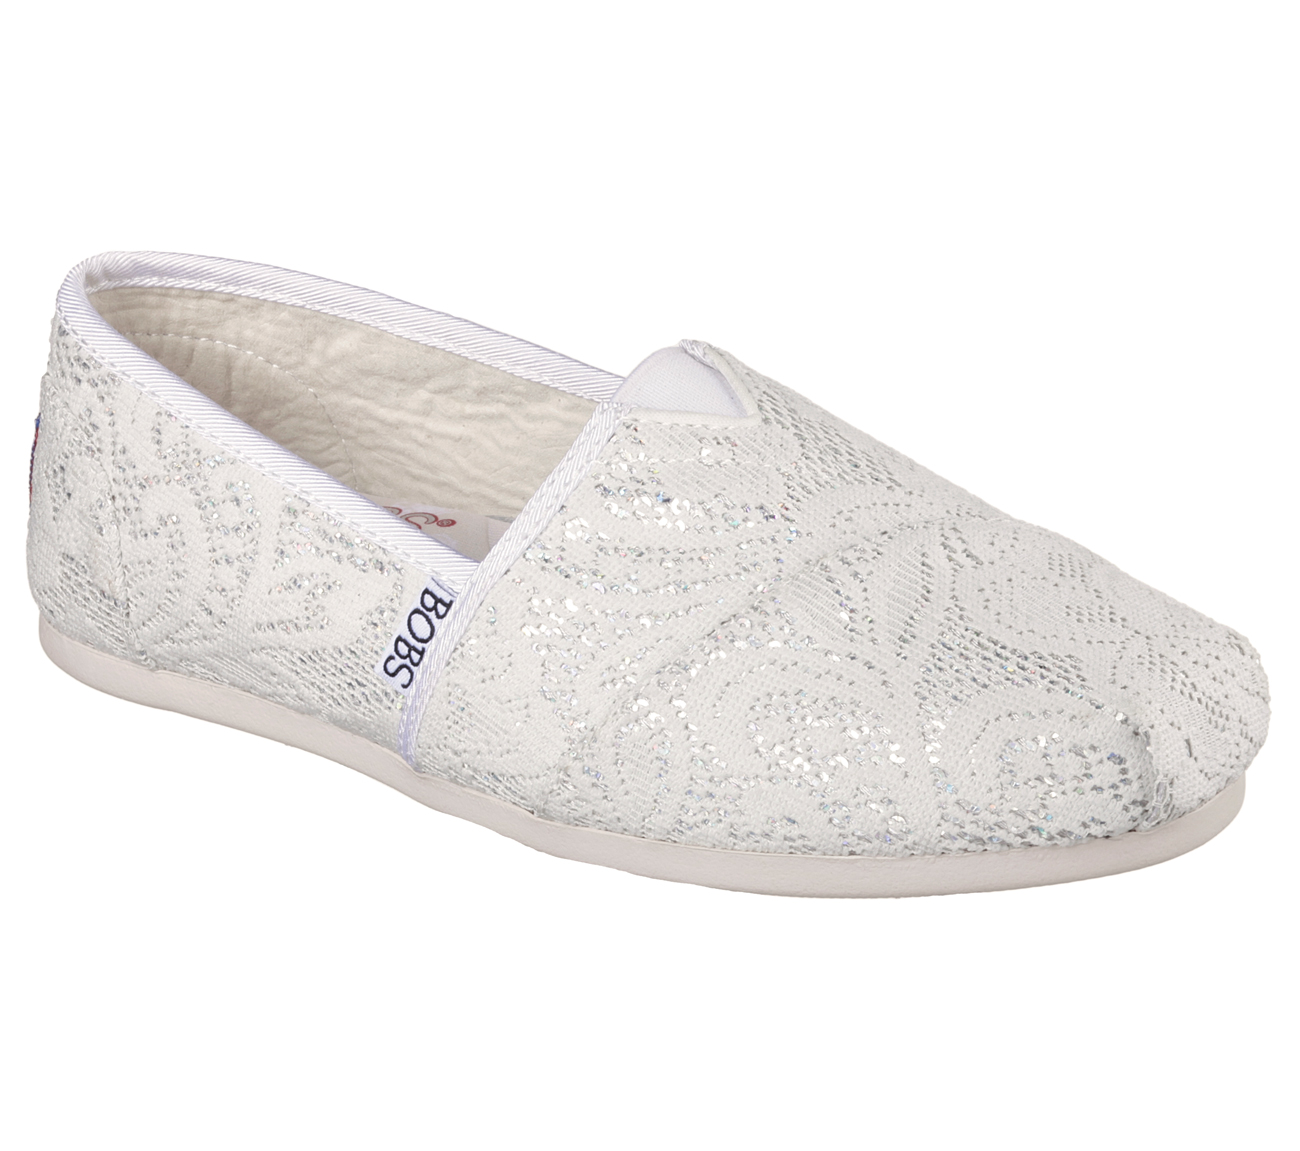 White Lace Bobs Shoes